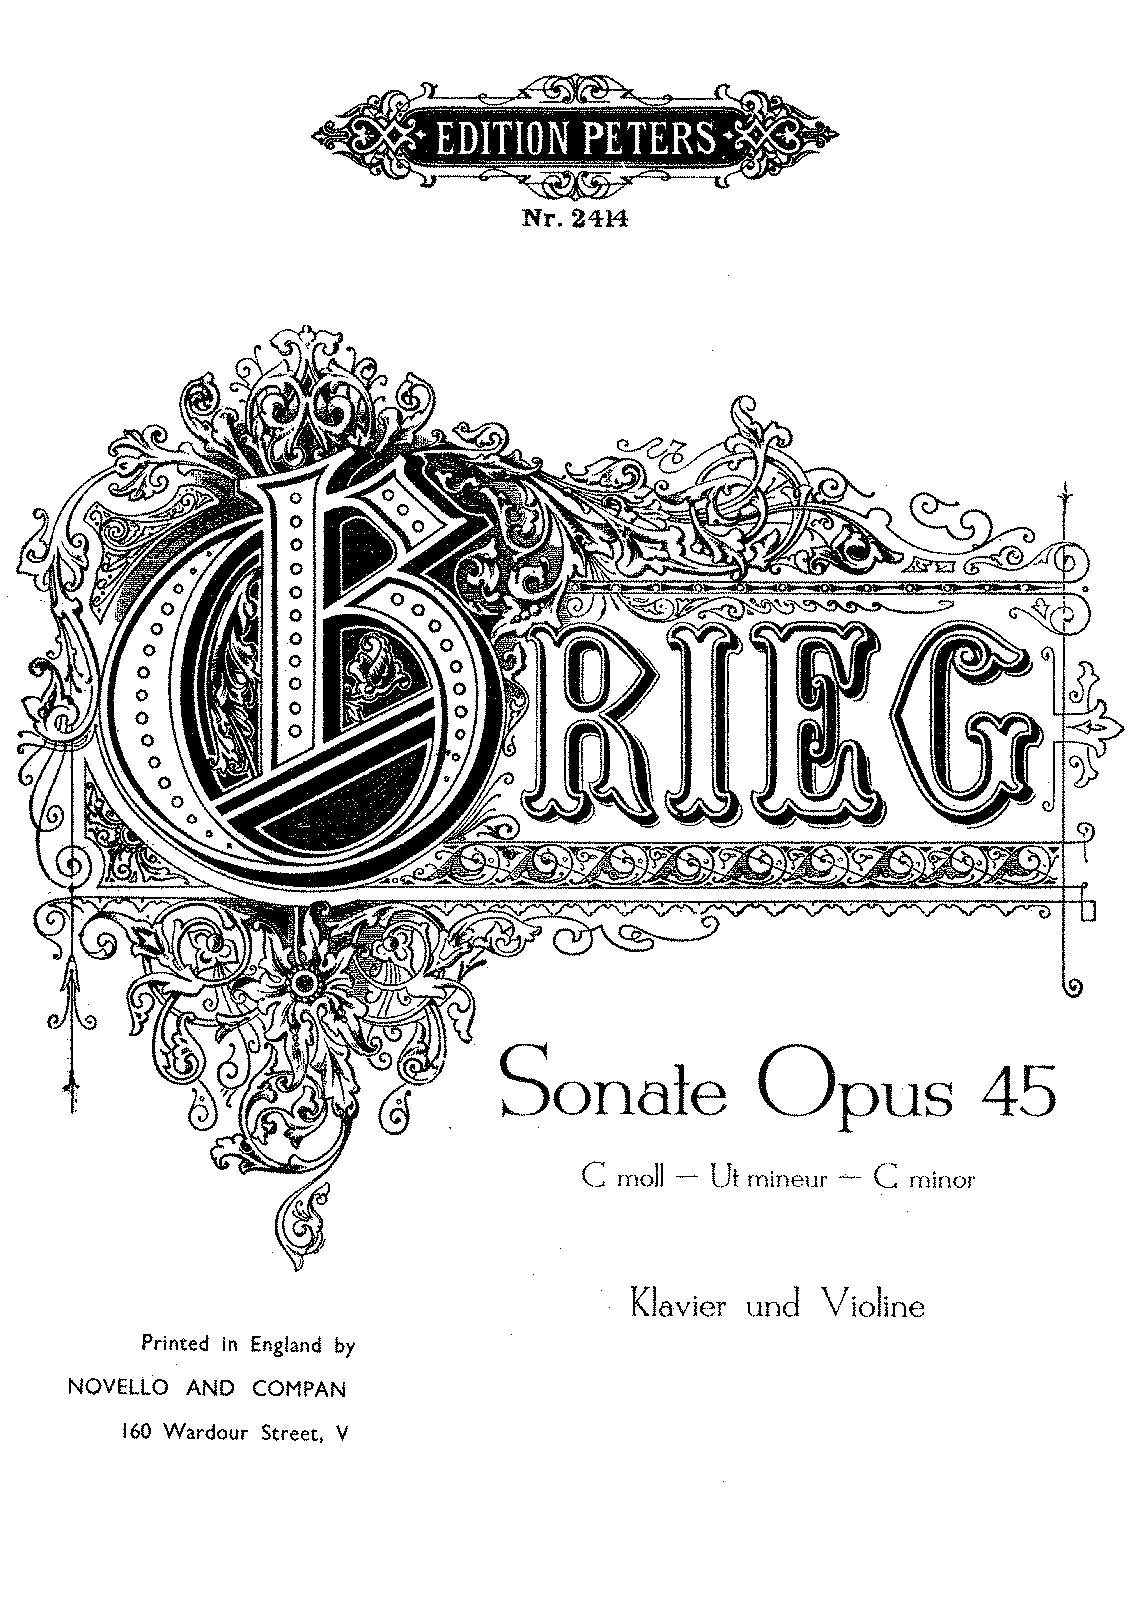 Sonate c-minor Grieg.pdf